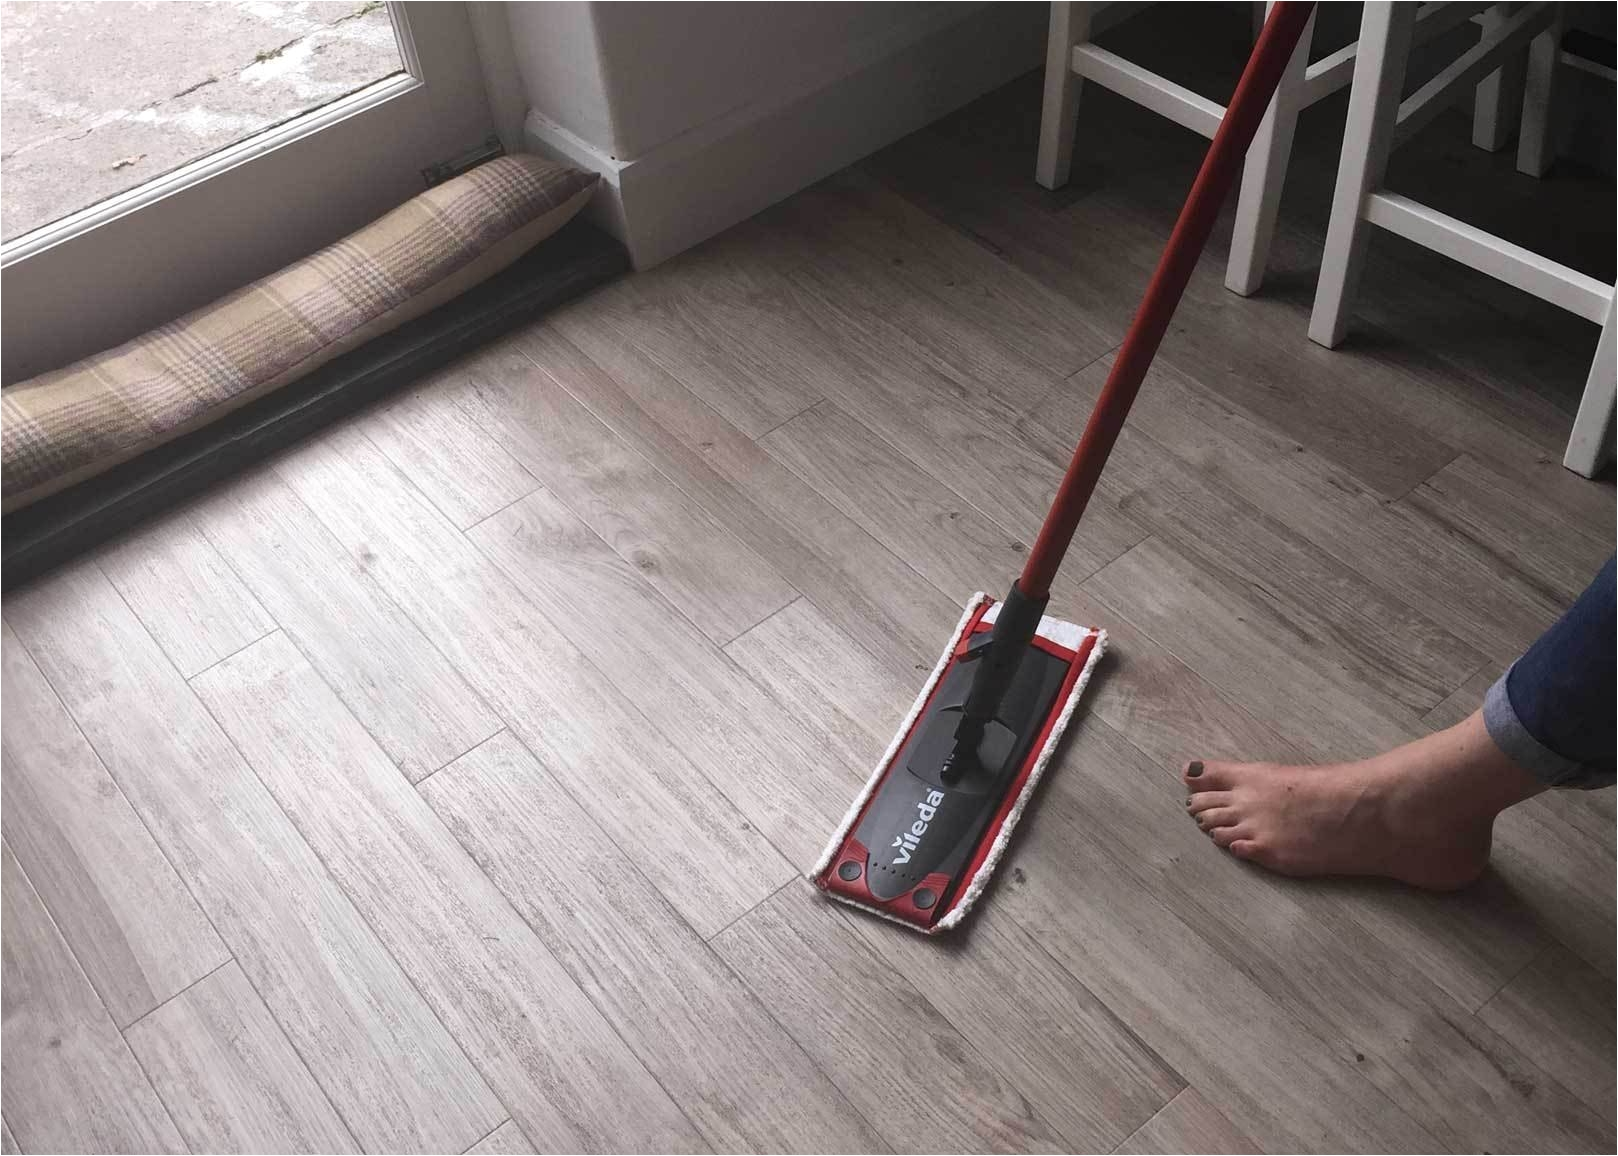 Best Steam Cleaner For Hardwood Floors To Clean Podemosleganes